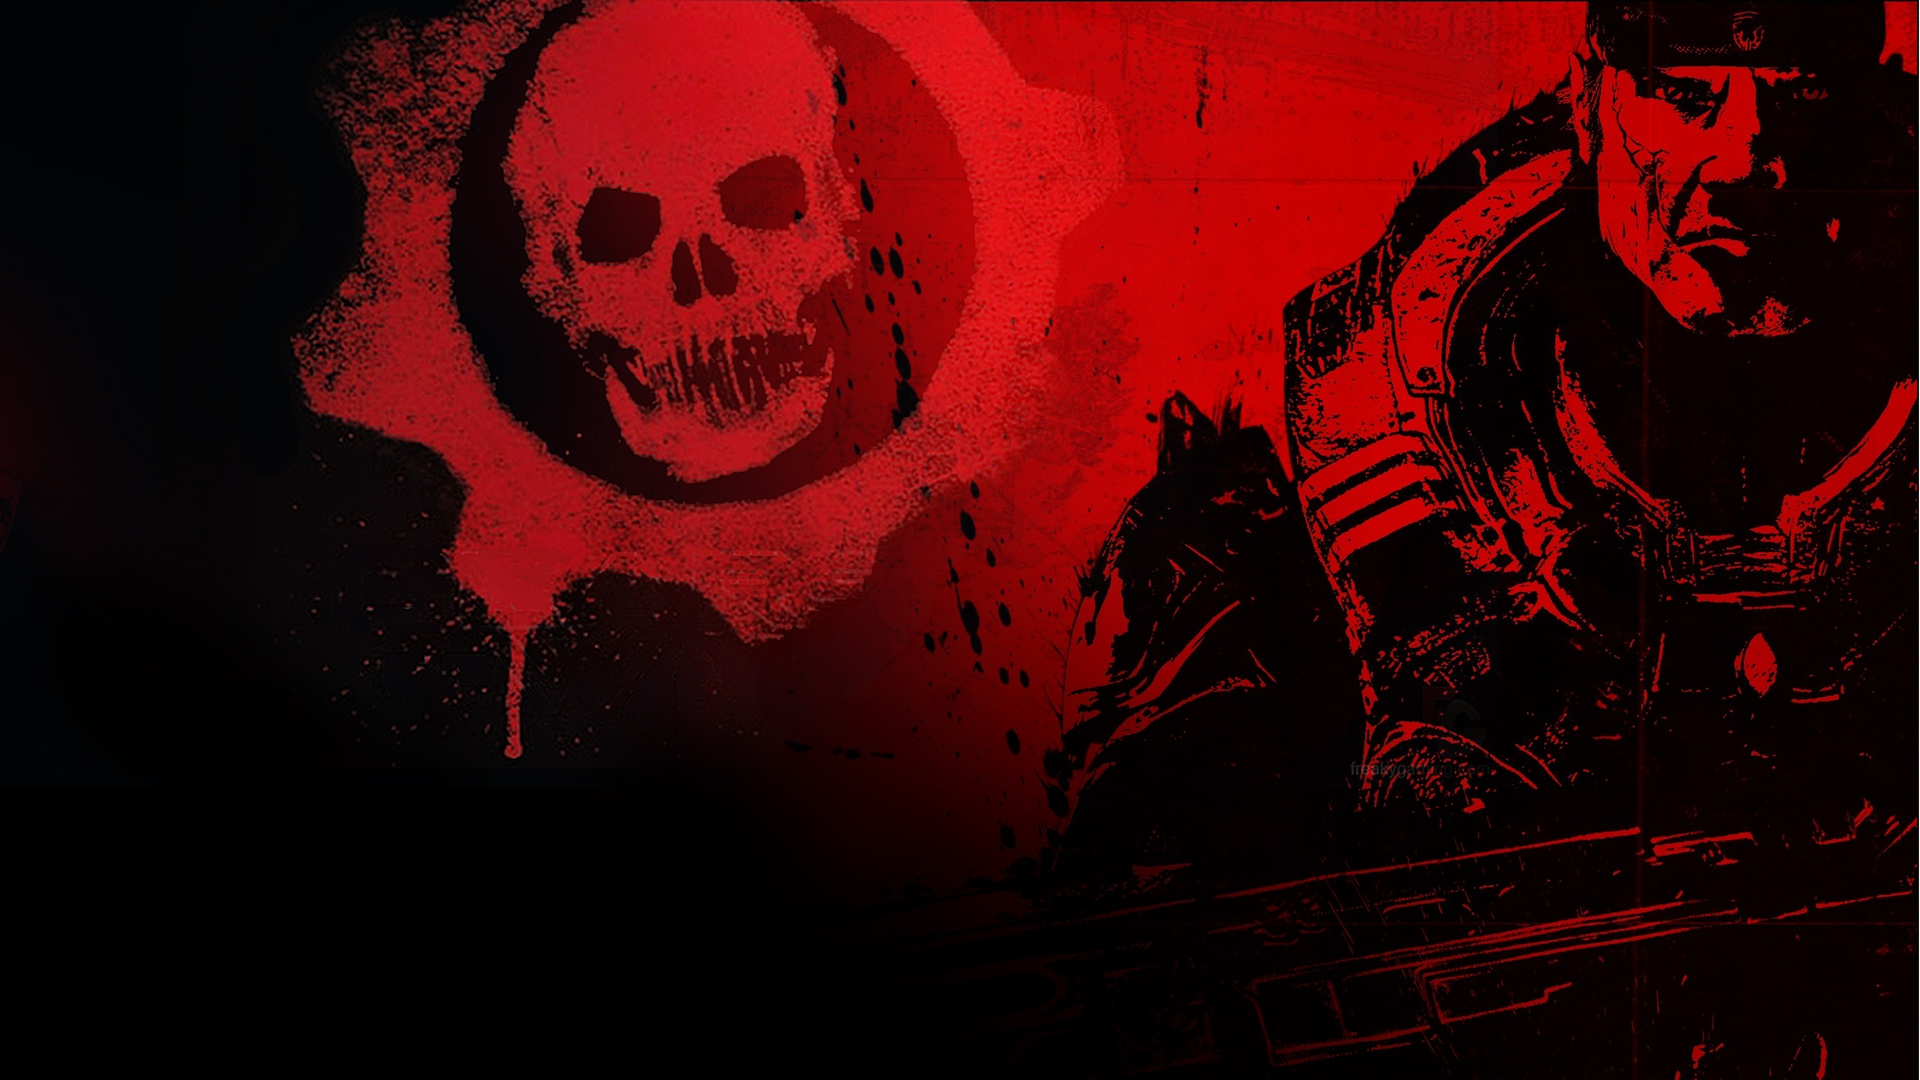 Gears Of War Wallpaper Free HD Backgrounds Images